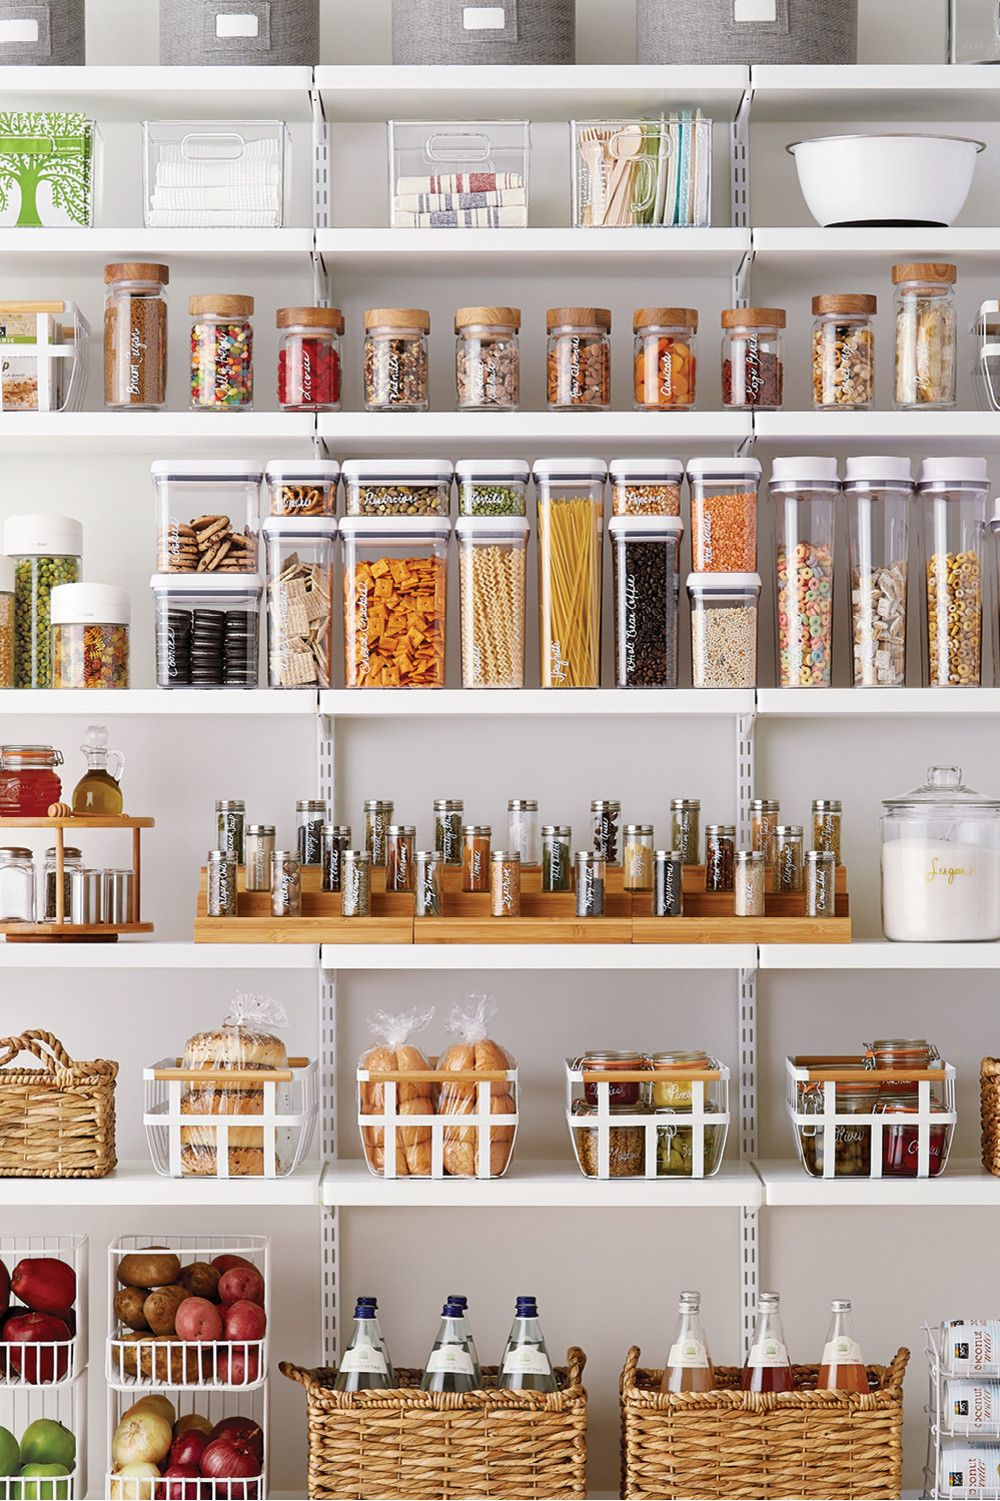 Kitchen Refresh: Pantry